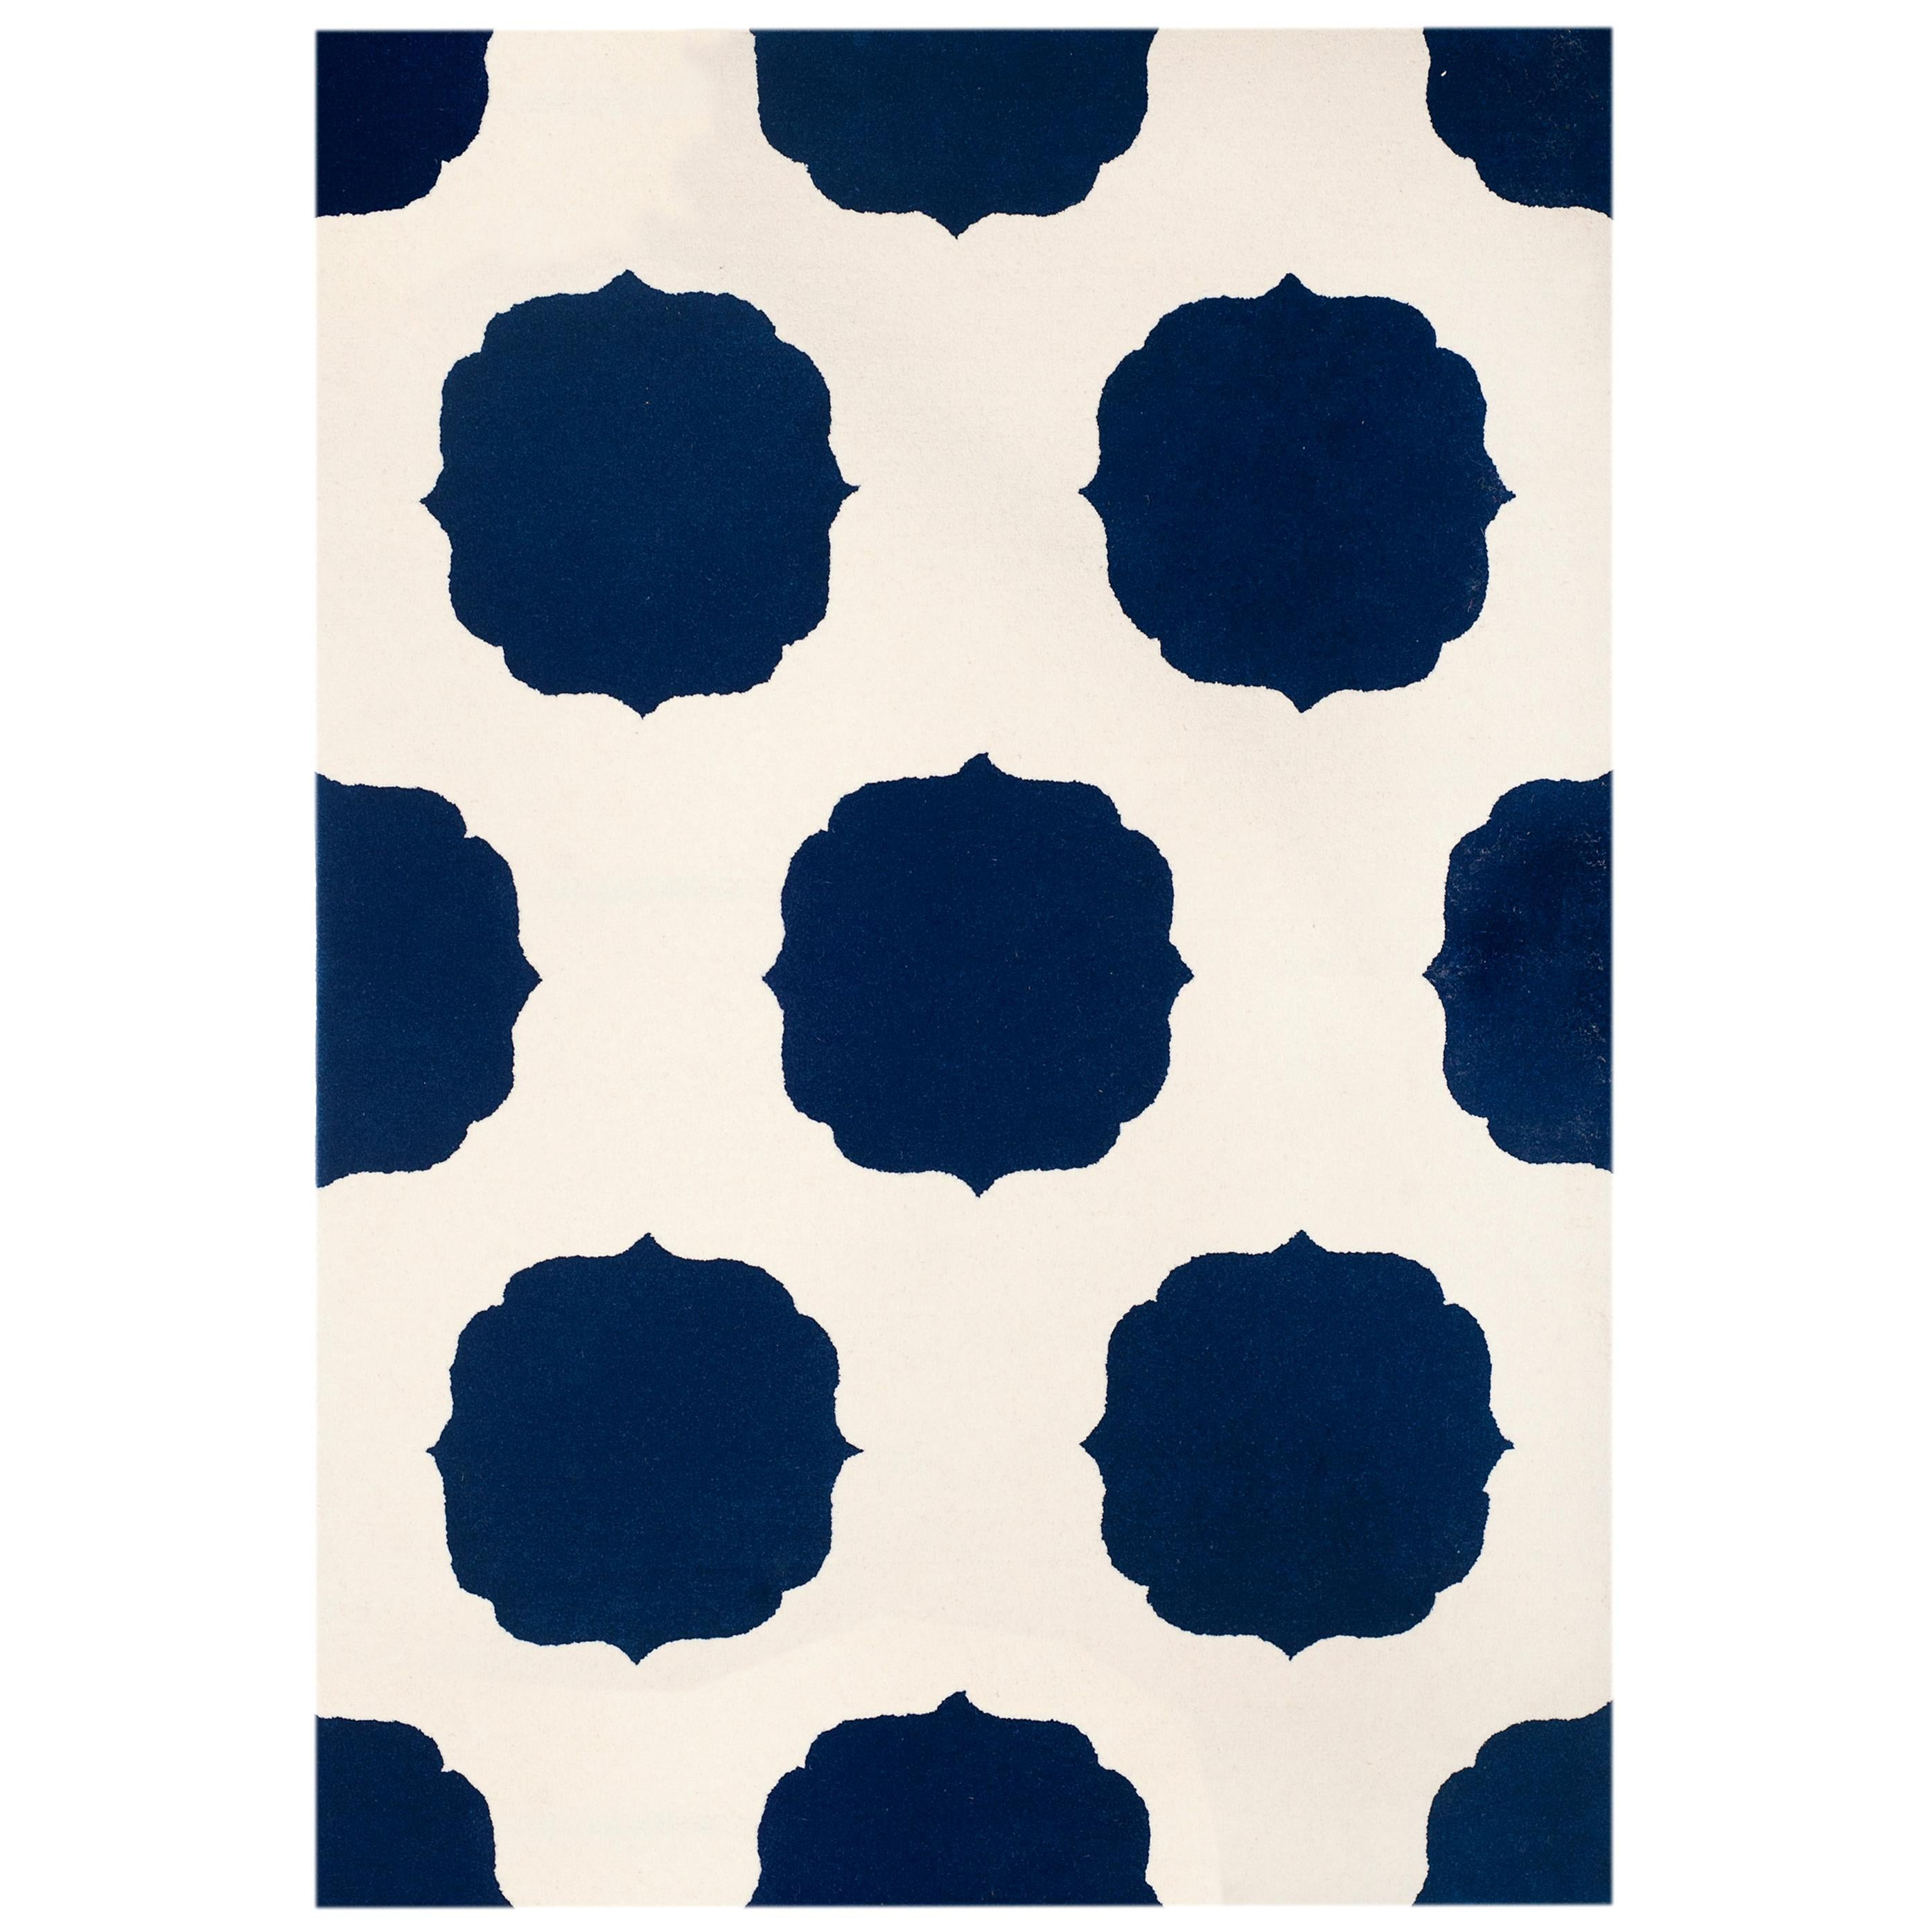 Kilombo Home 21st Century Hand Tufted Wool Rug Made in Spain White and Blue